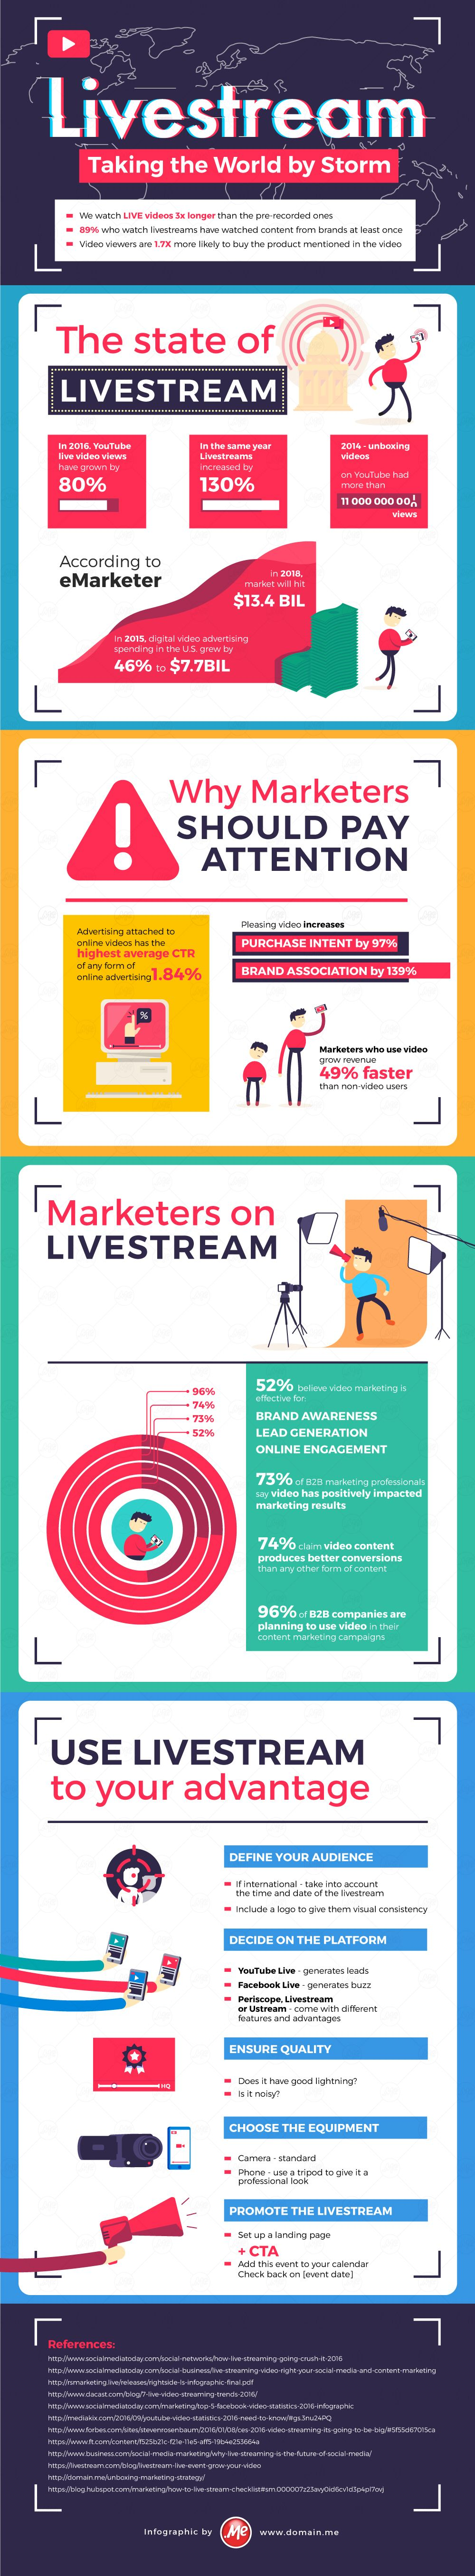 [INFOGRAPHIC] Livestream Is Taking the World by Storm